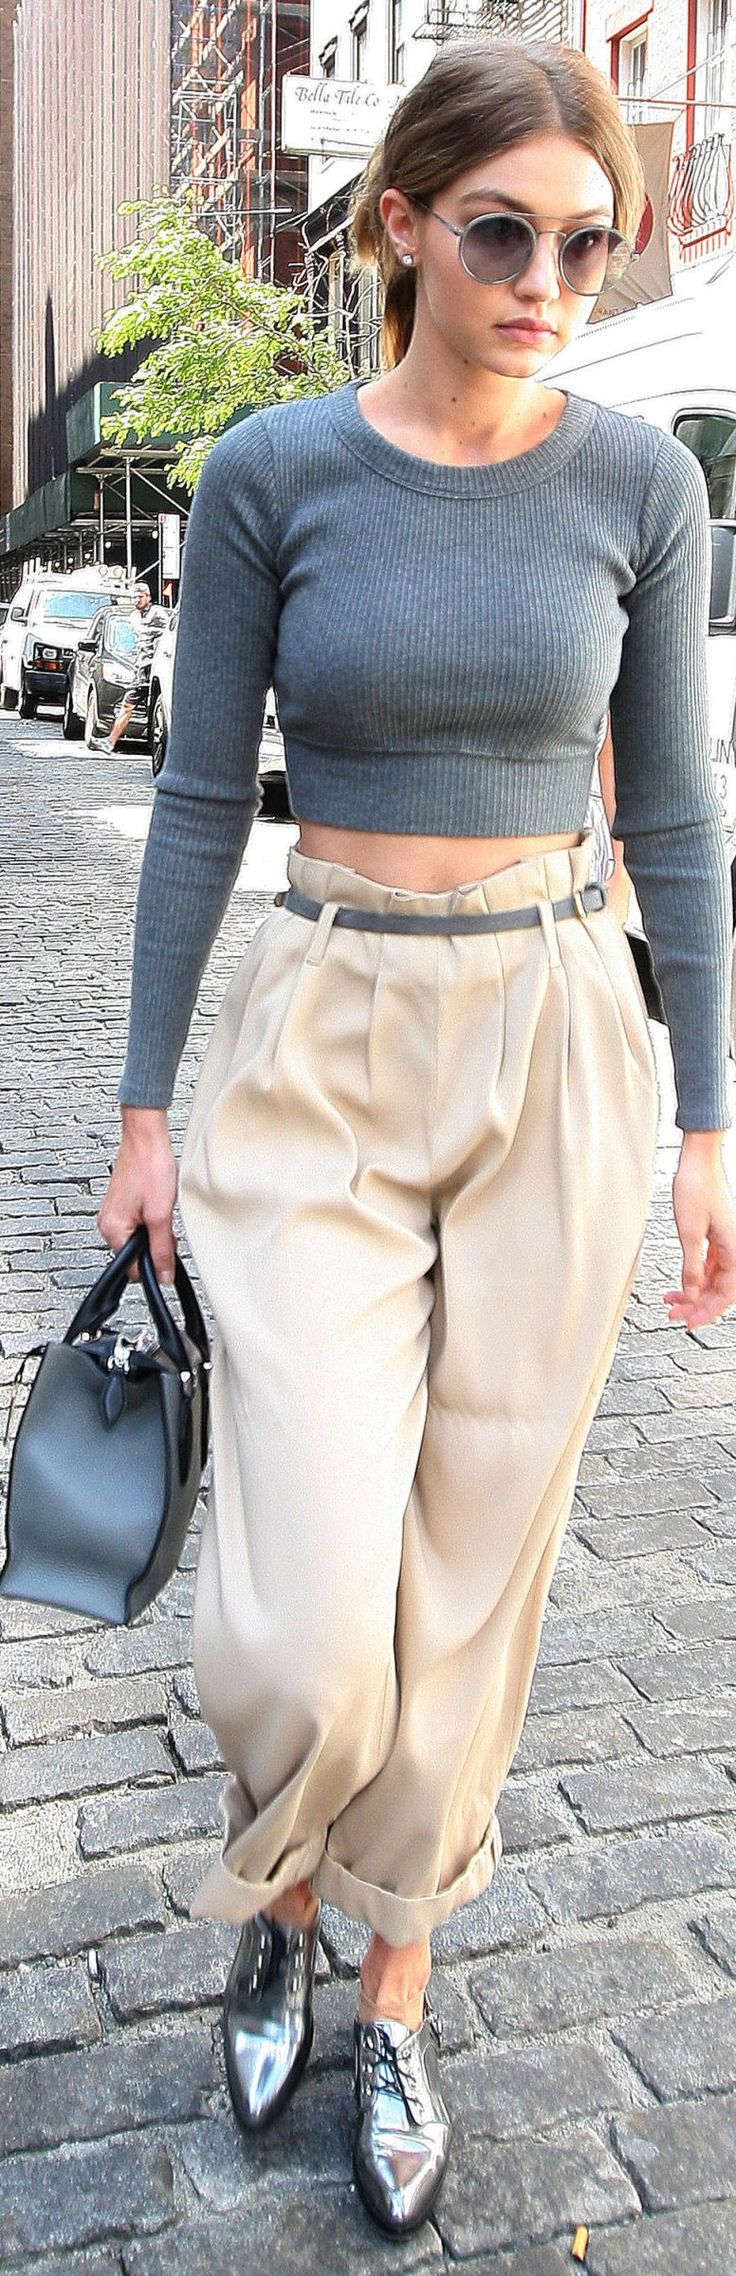 HATE the shoes, love the outfit - Gigi Hadid -